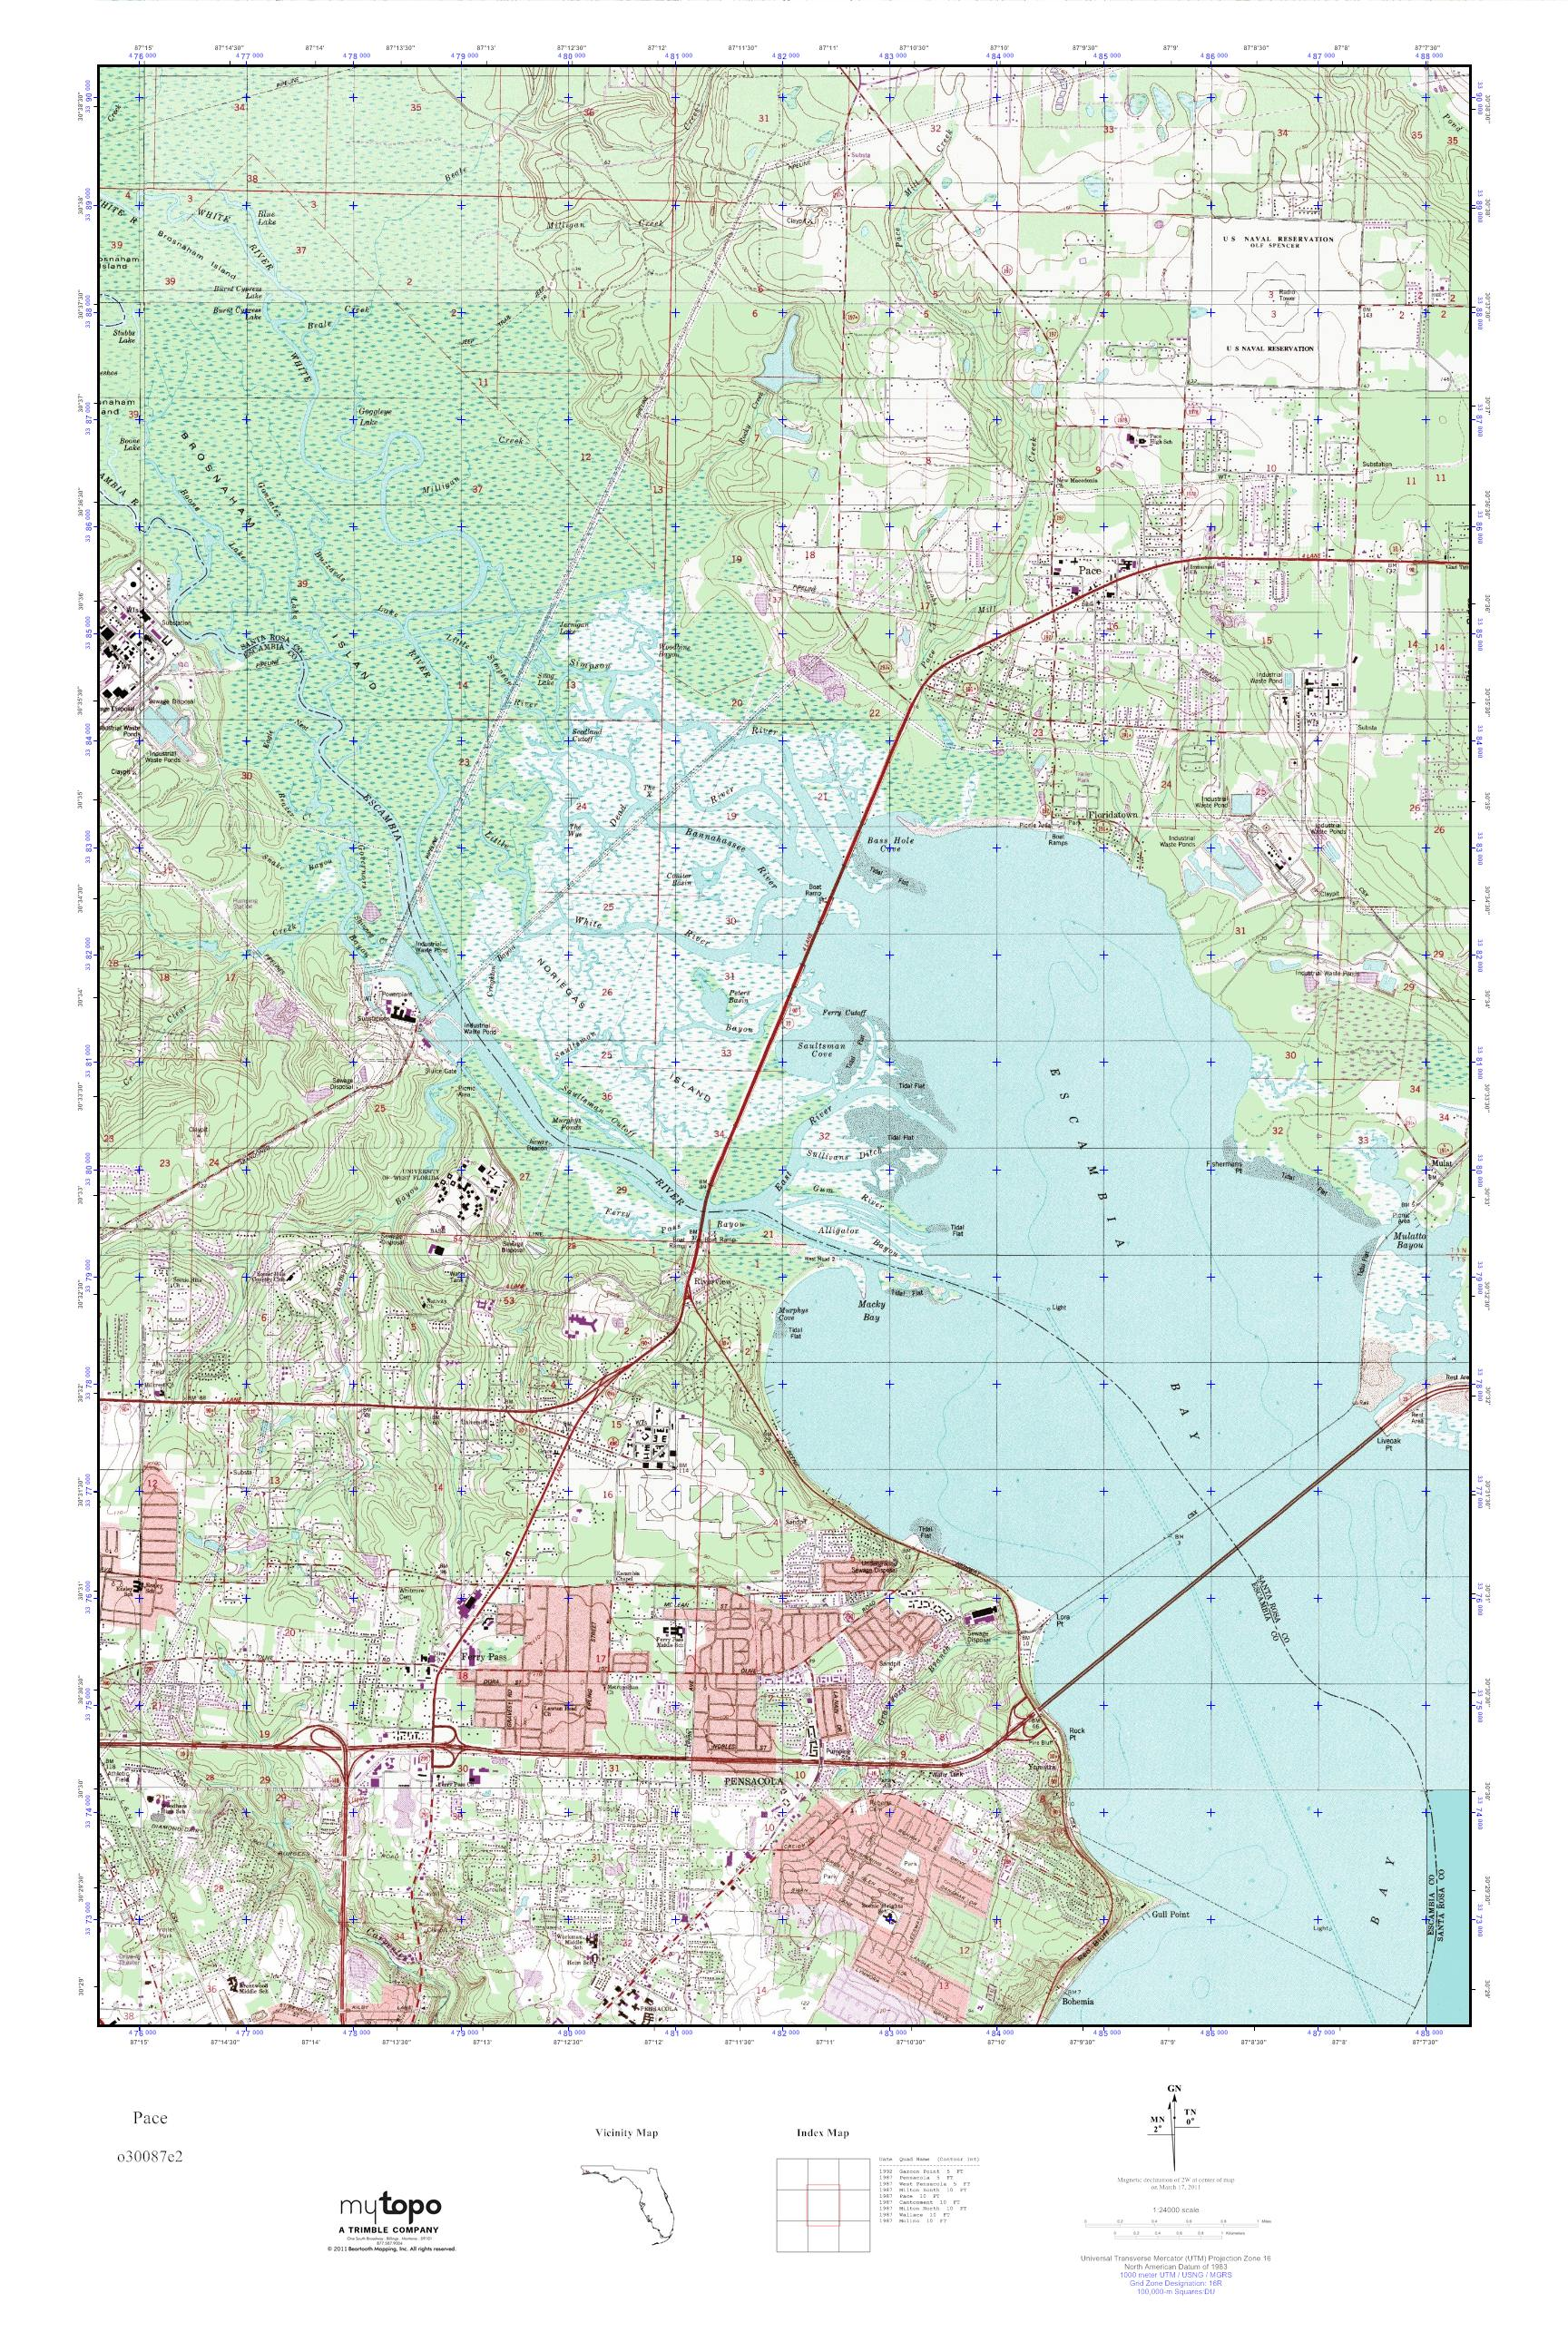 Pace Florida Map.Mytopo Pace Florida Usgs Quad Topo Map